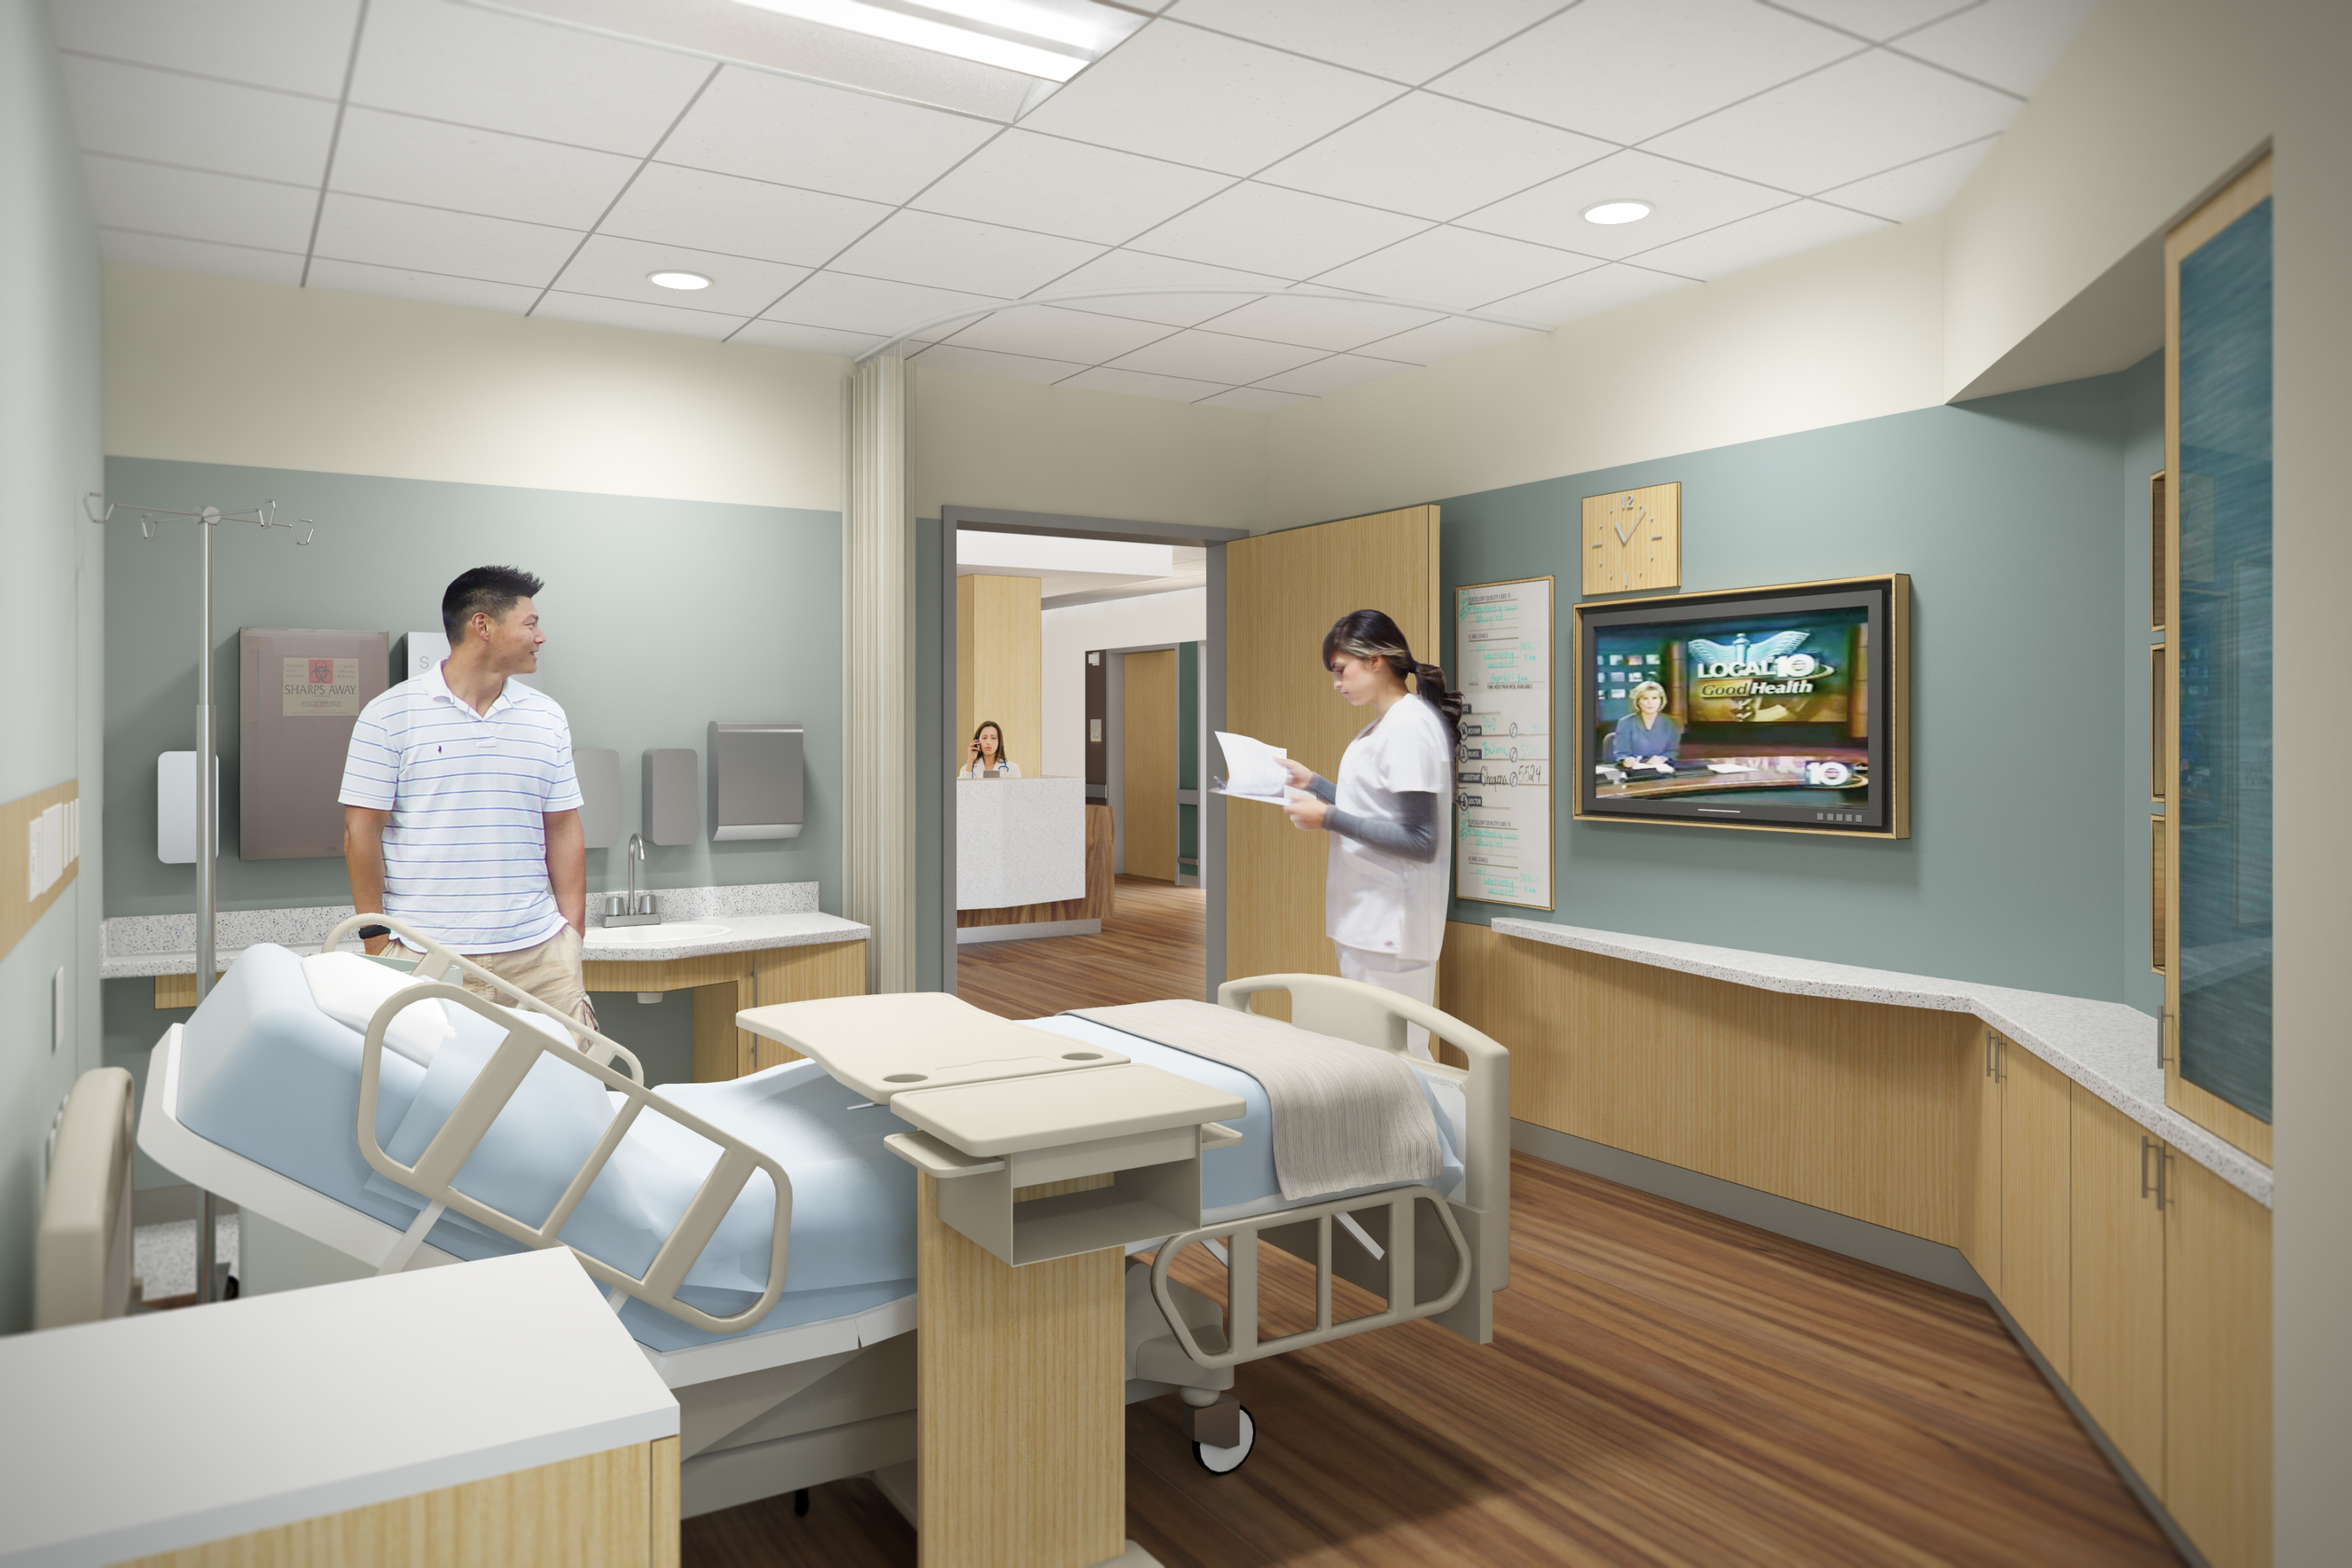 HMC Architects used hospital room design strategies in the Henry Mayo Newhall Hospital Patient Tower.